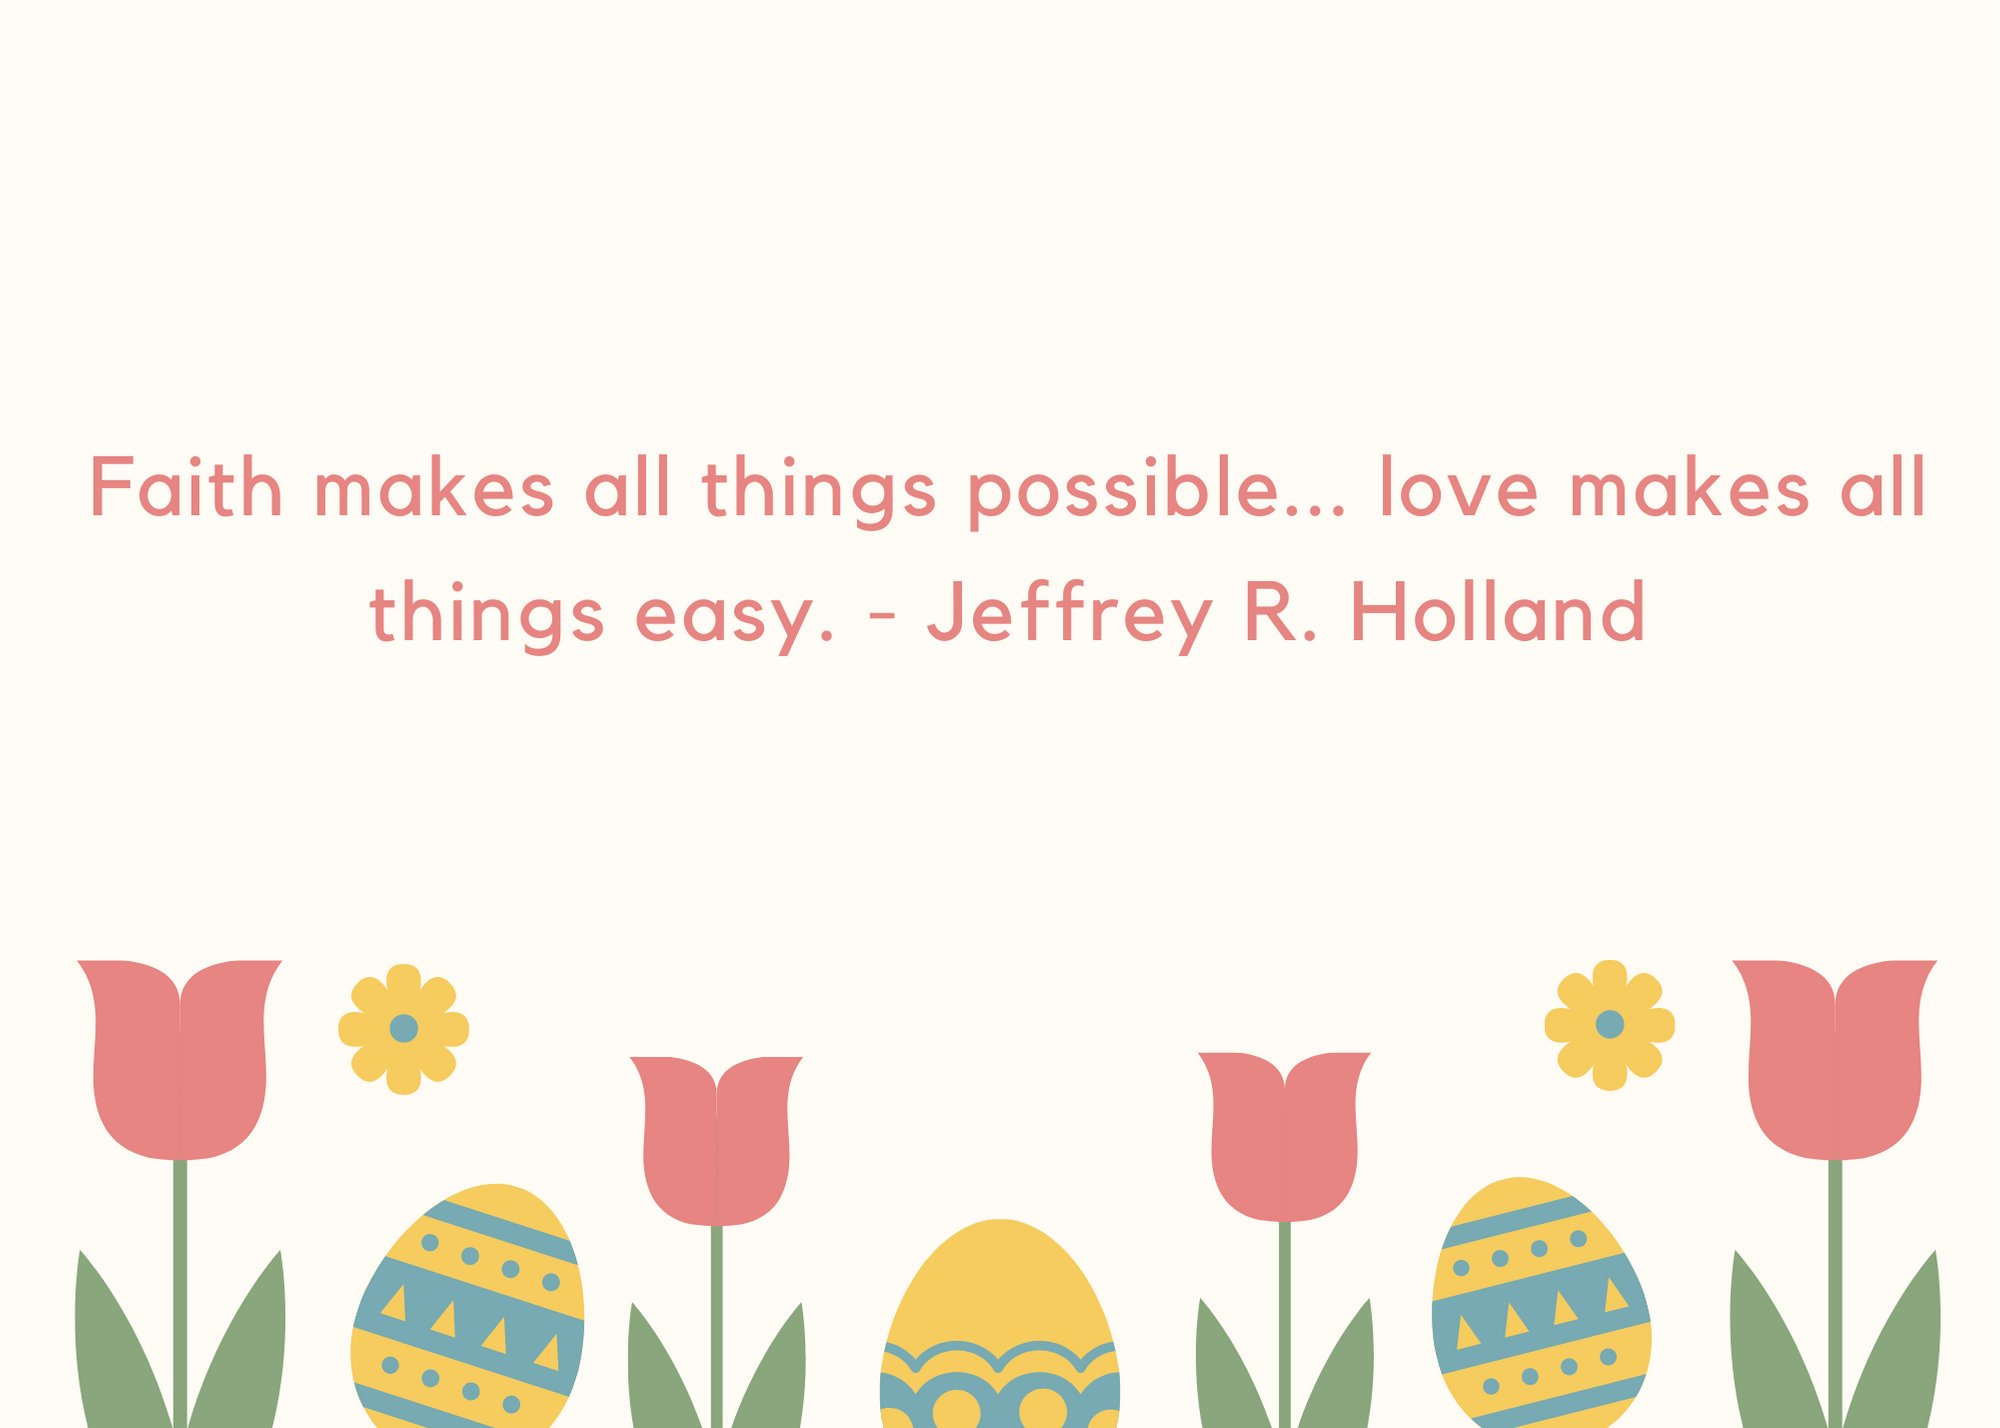 Faith makes all things possible... love makes all things easy. - Jeffrey R. Holland